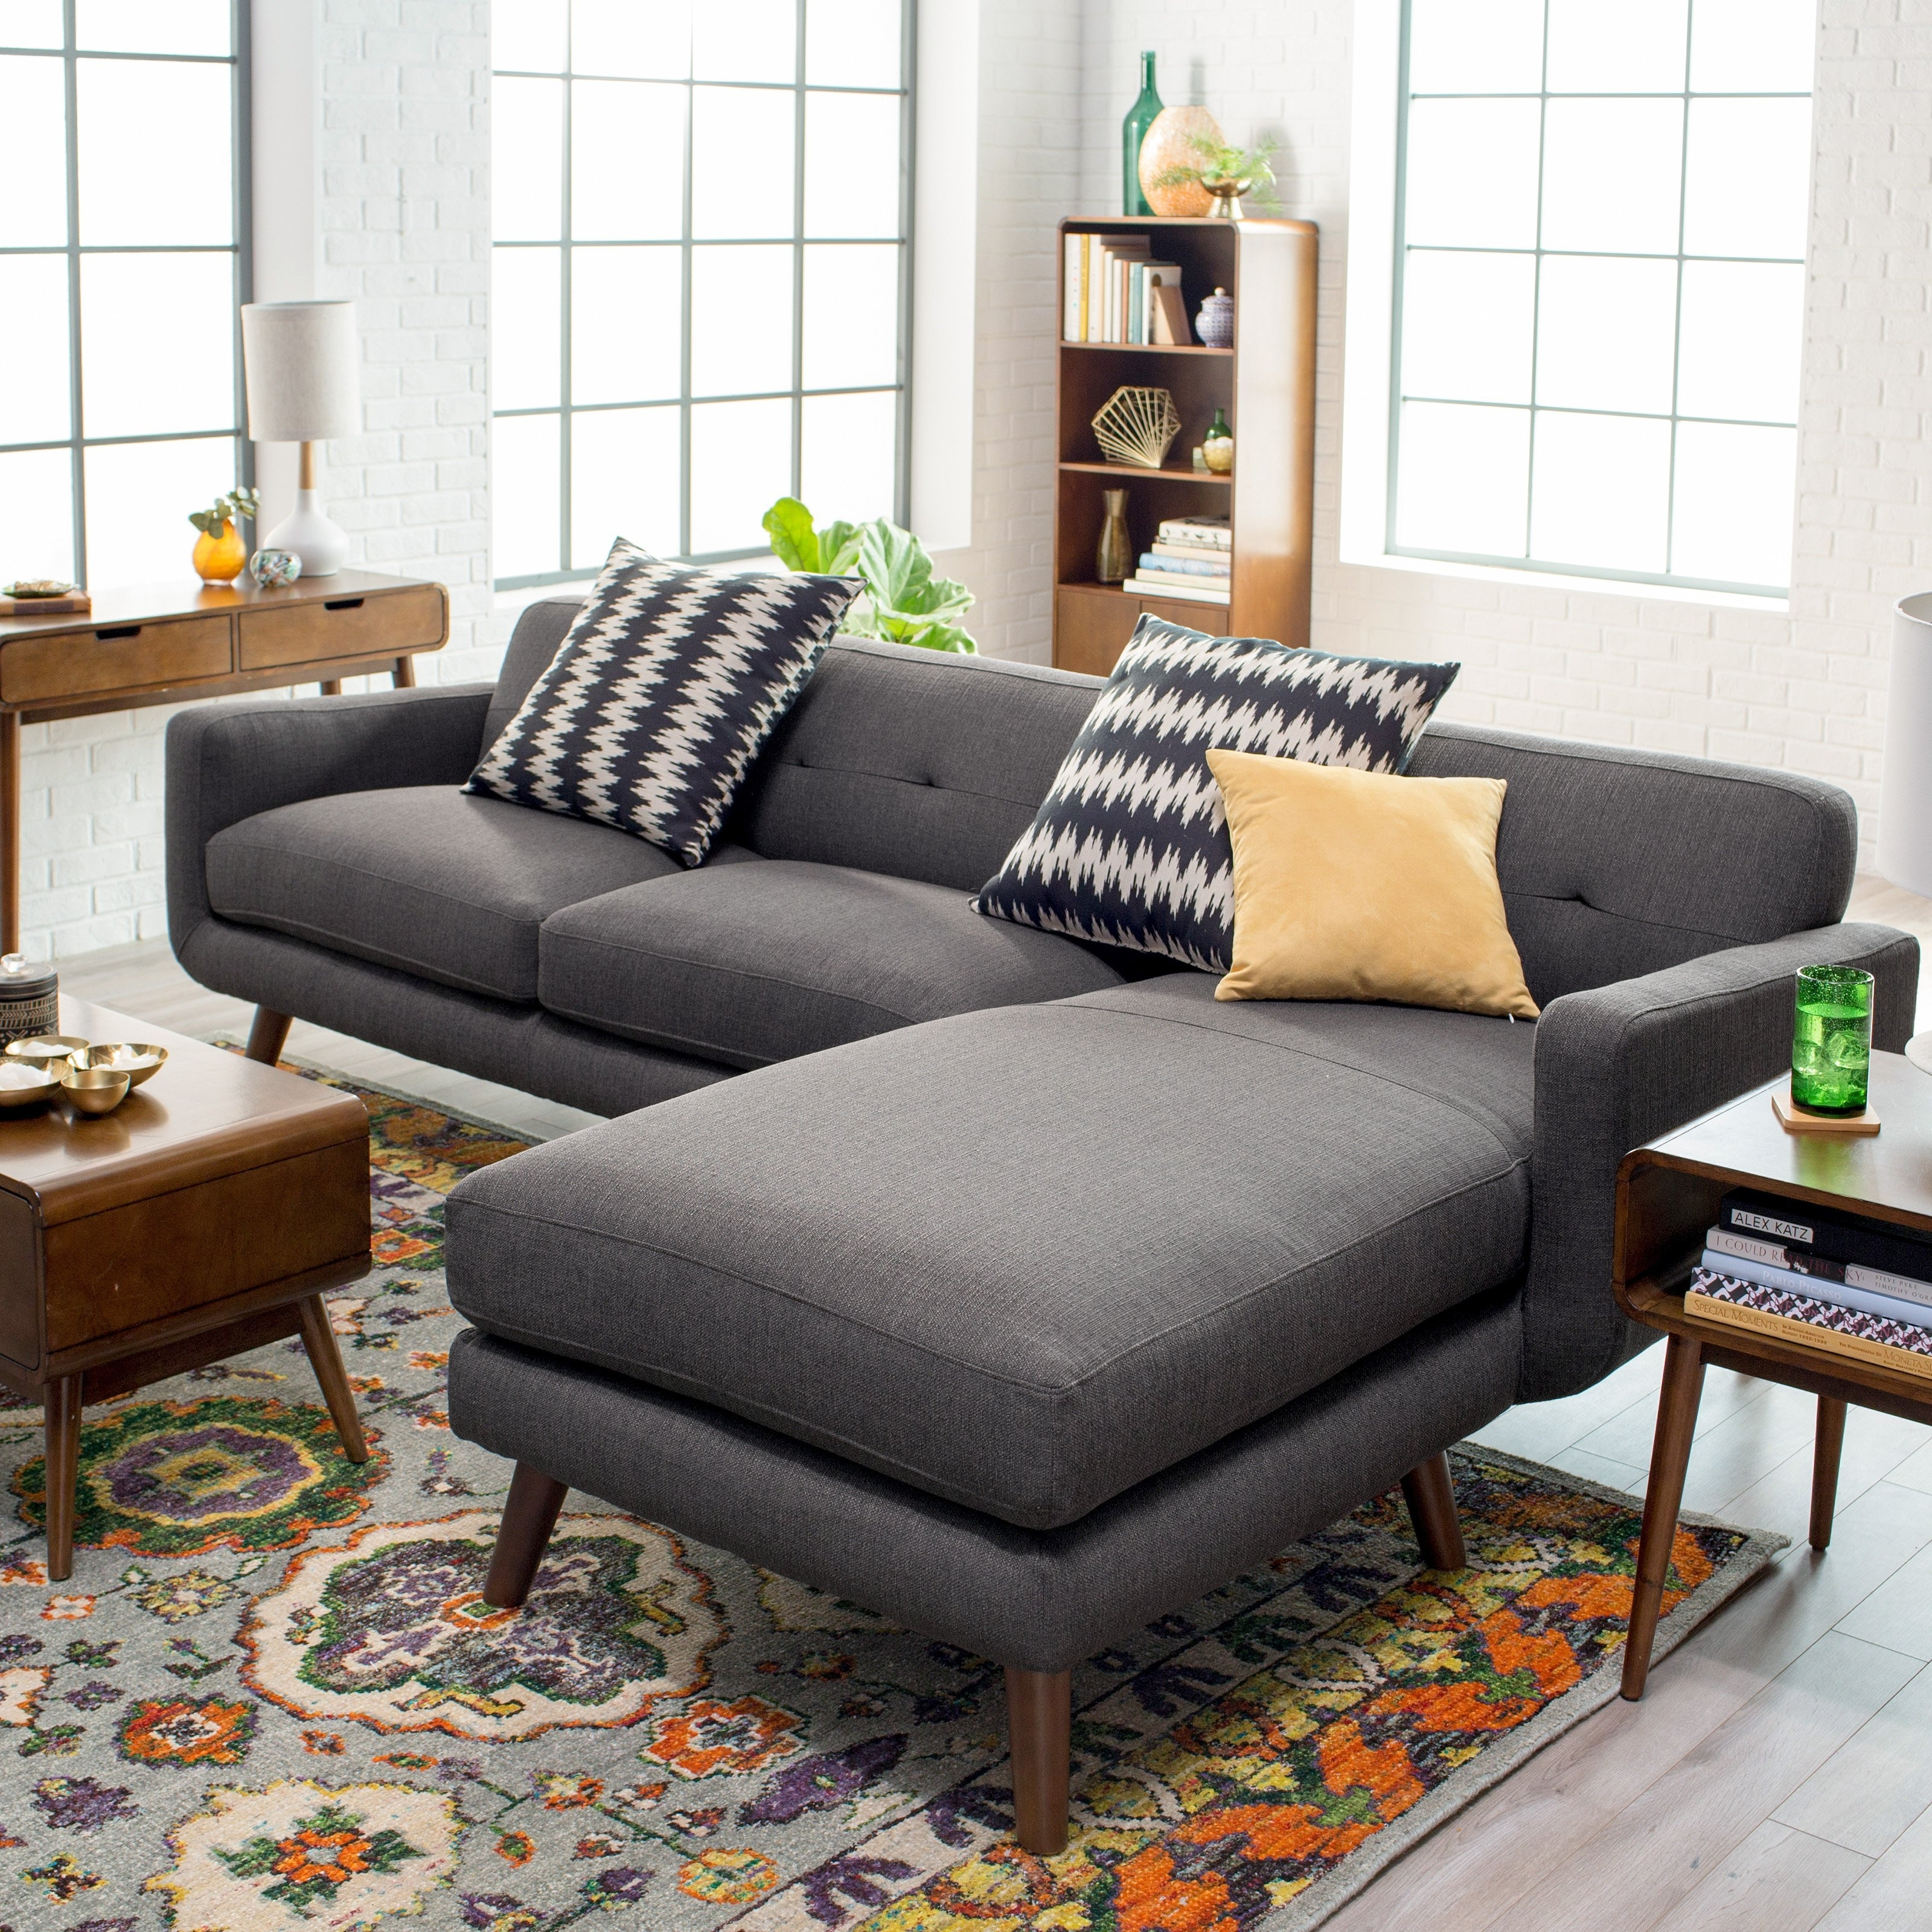 Dorel Living Small Spaces Configurable Sectional Sofa | Hayneedle Within Sectional Sofas (View 3 of 10)